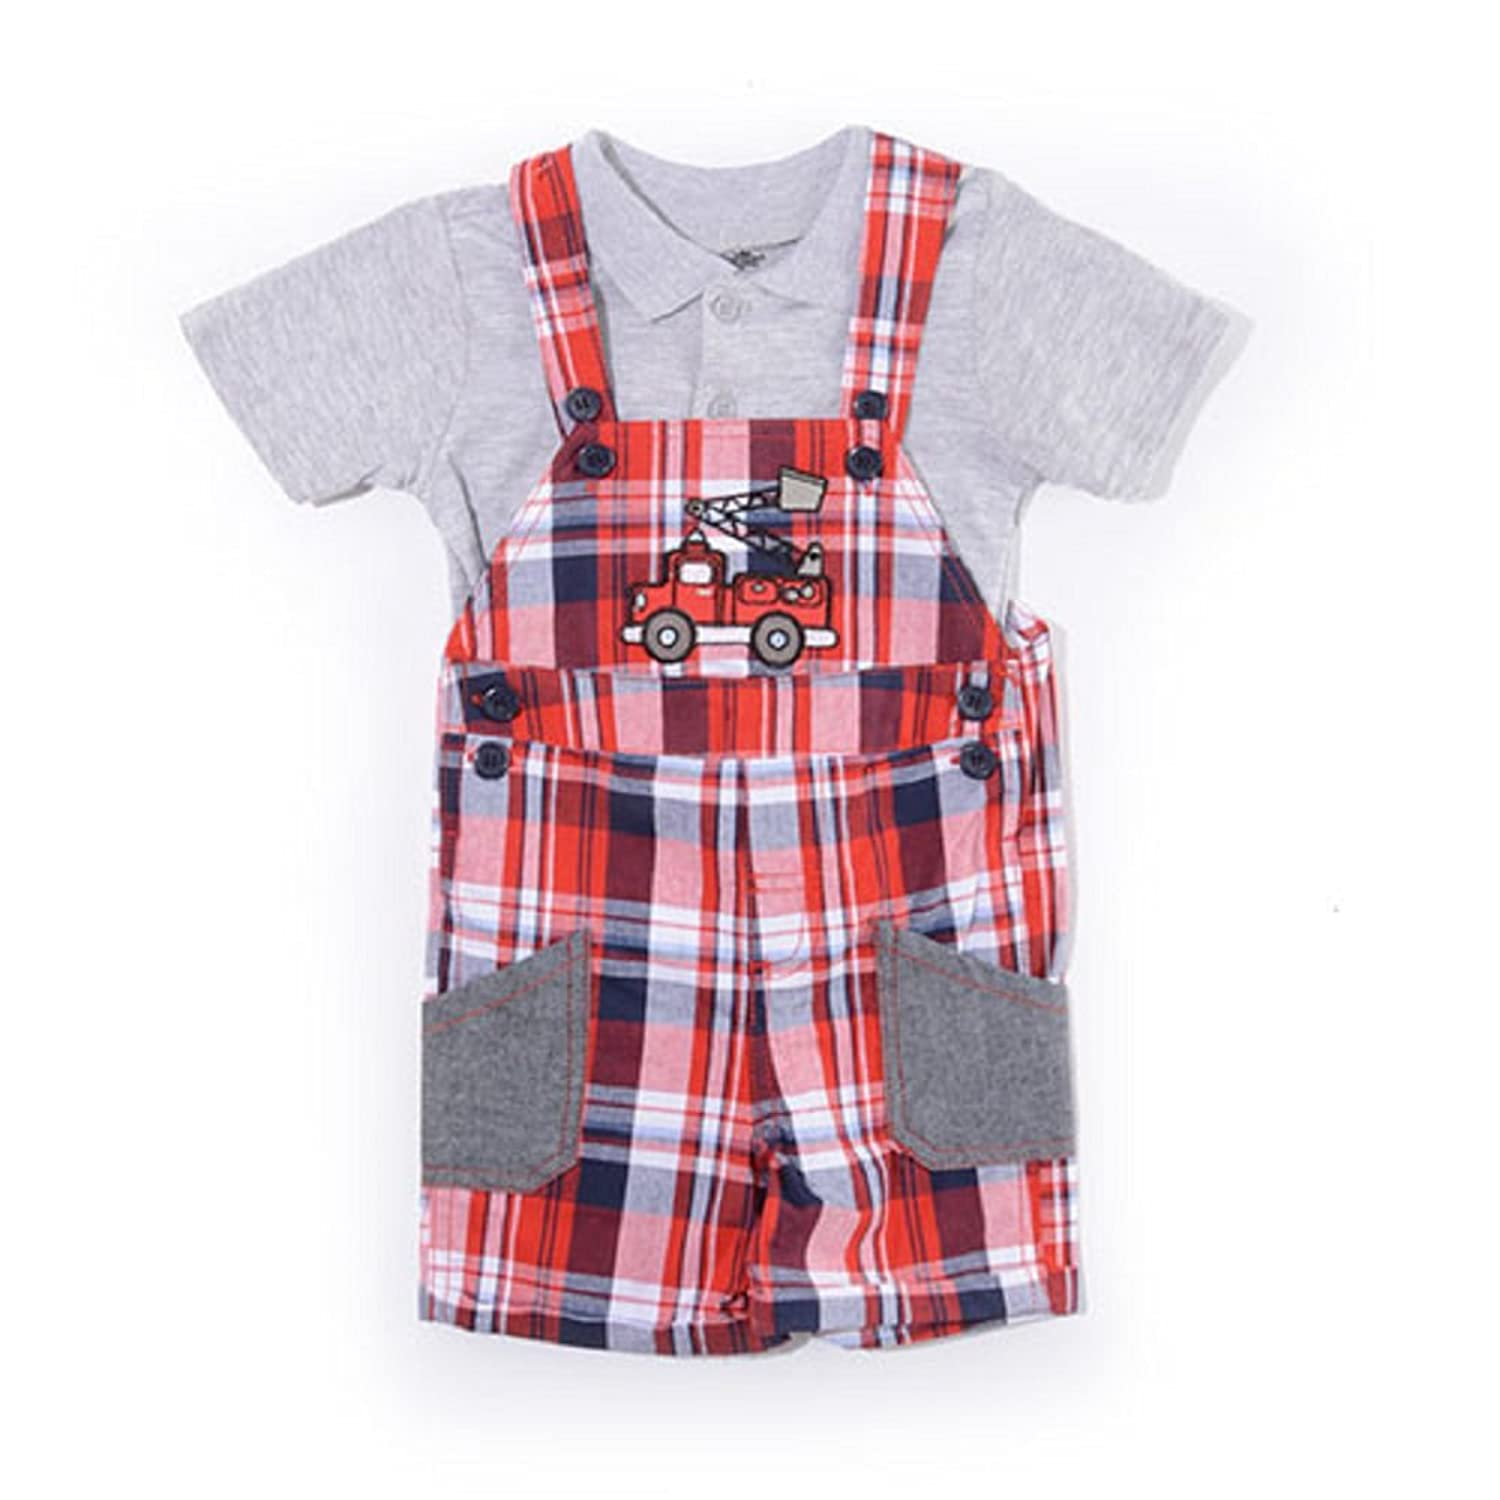 ec57e9855a266 Nannette Baby Boy Fire Truck Plaid Shortalls 2 Pc. Set 12 Months ...